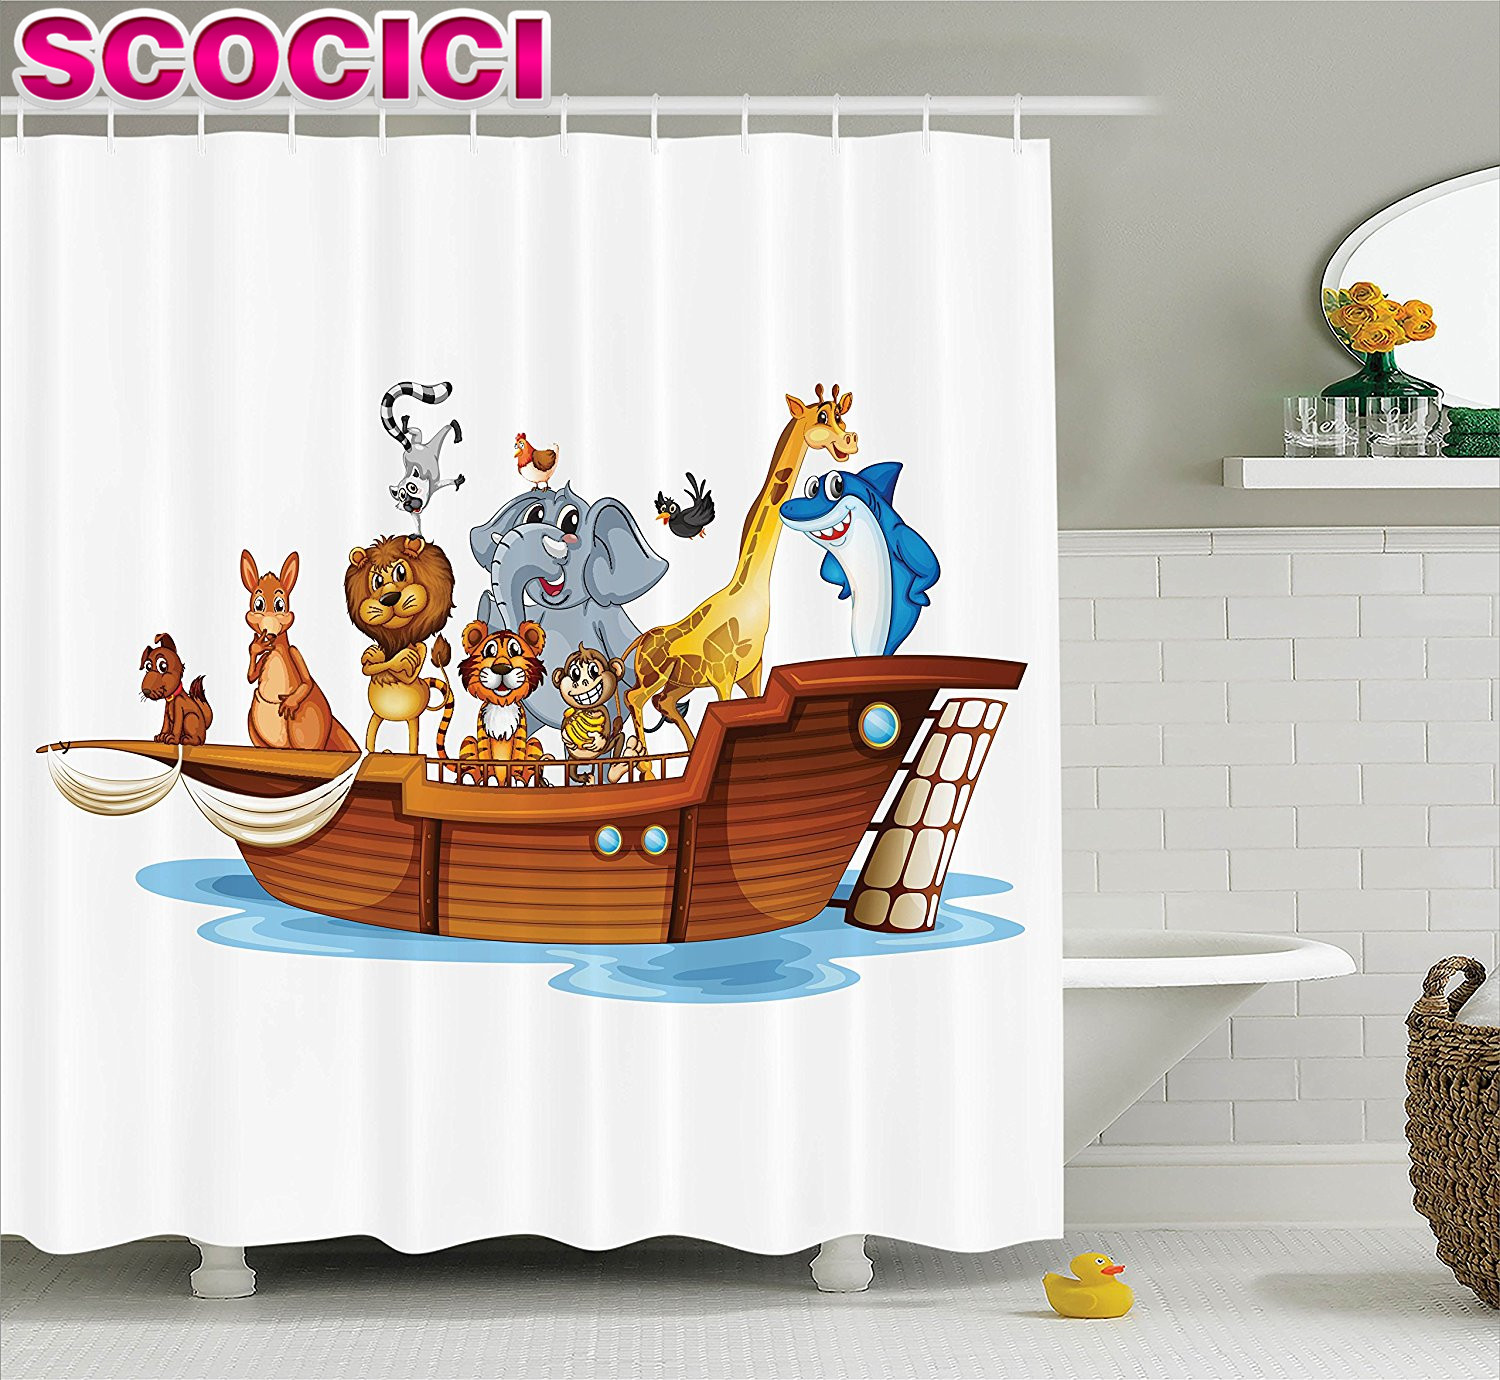 online get cheap noah ark animals aliexpress com alibaba group noahs ark decor shower curtain set illustration of many animals sailing in the boat mythical journey faith giraffe story art bat